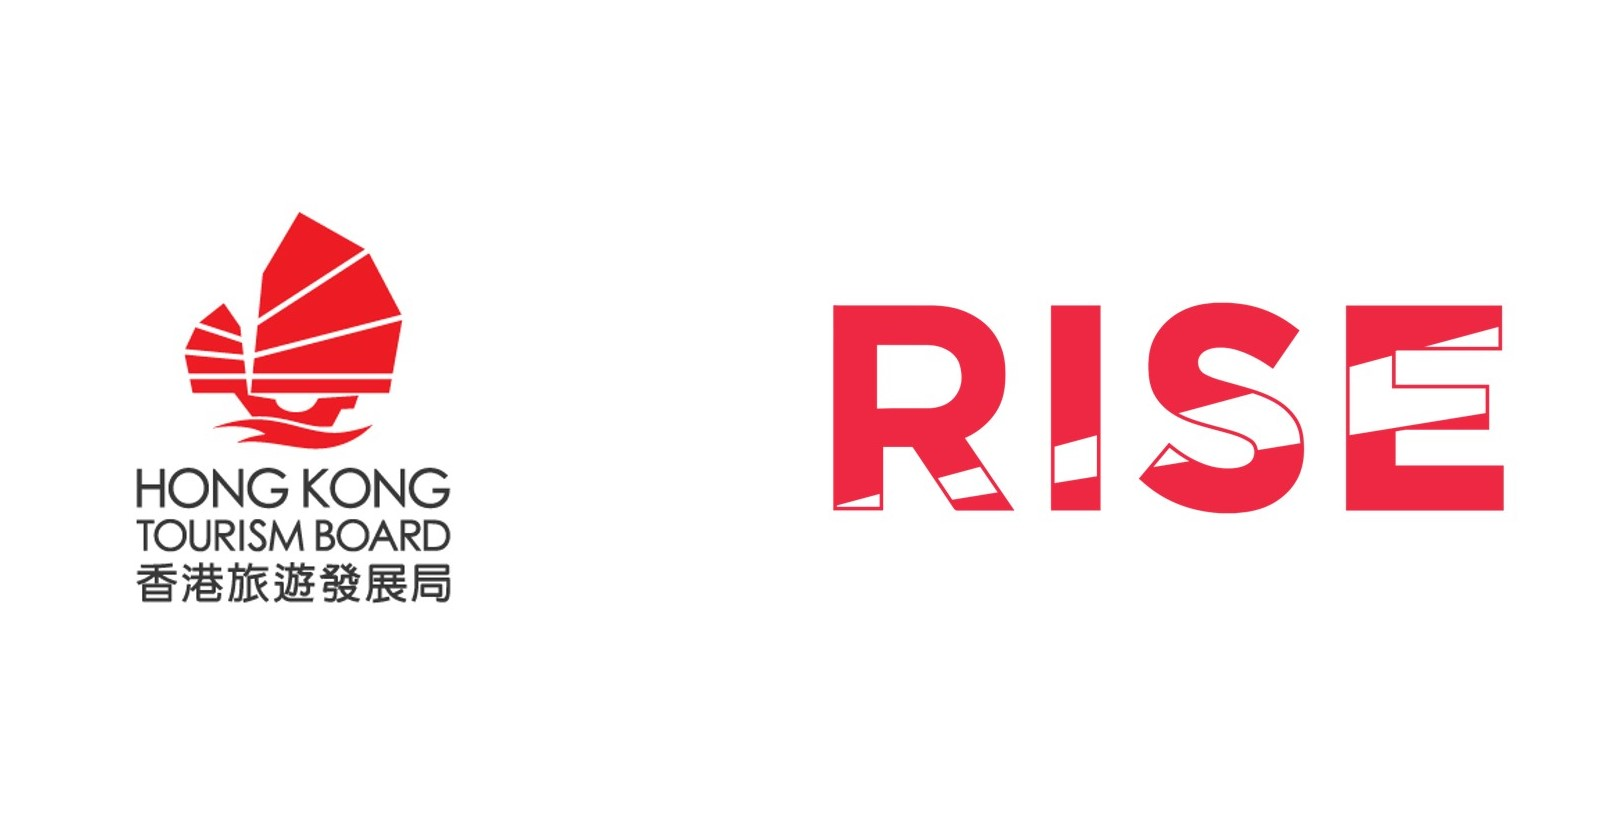 Hong Kong Tourism Board (HKTB) and Web Summit announced that RISE